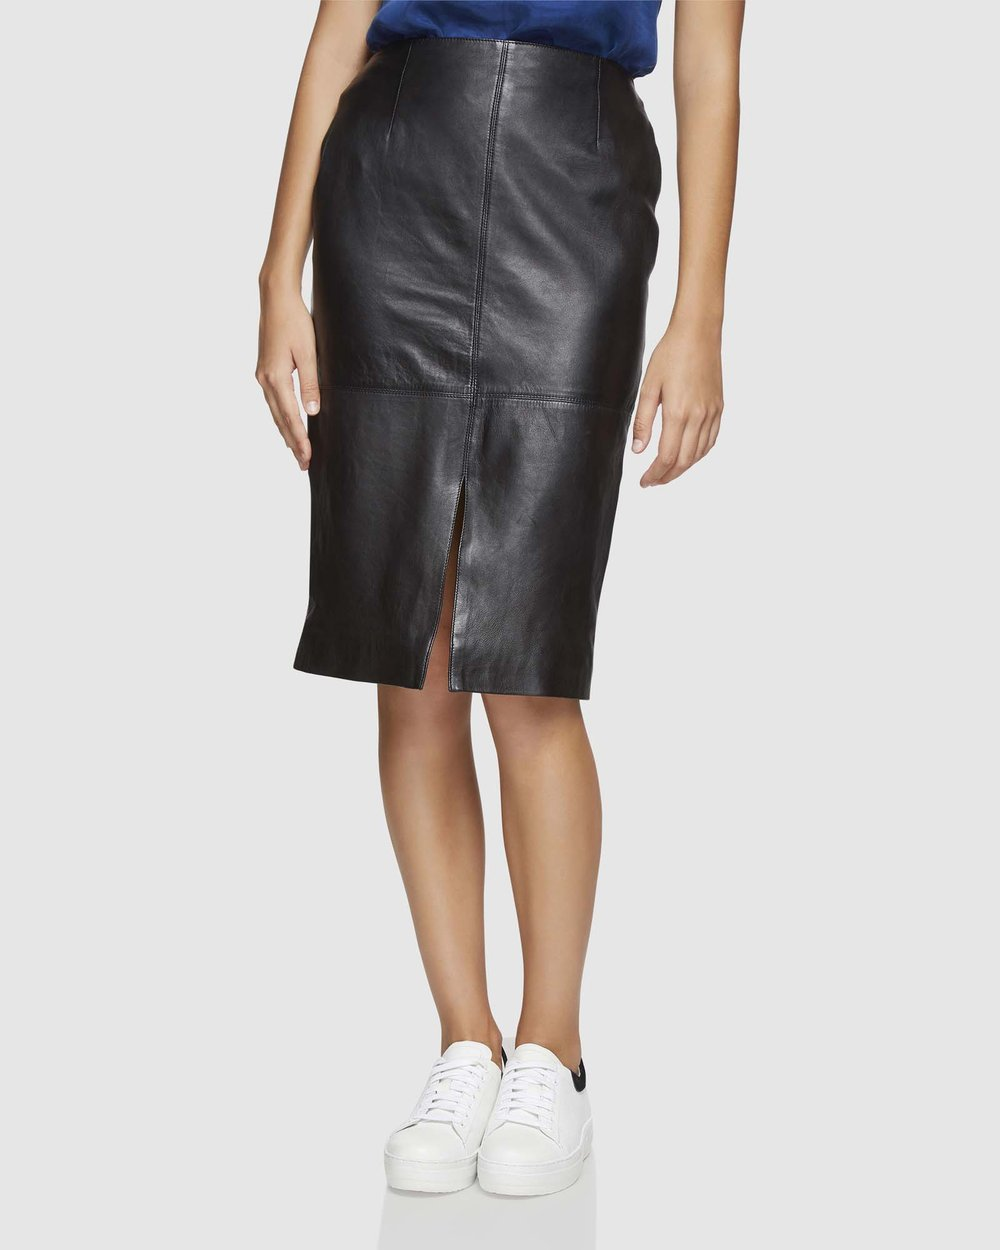 8db50c1ed9 Darby Leather Pencil Skirt